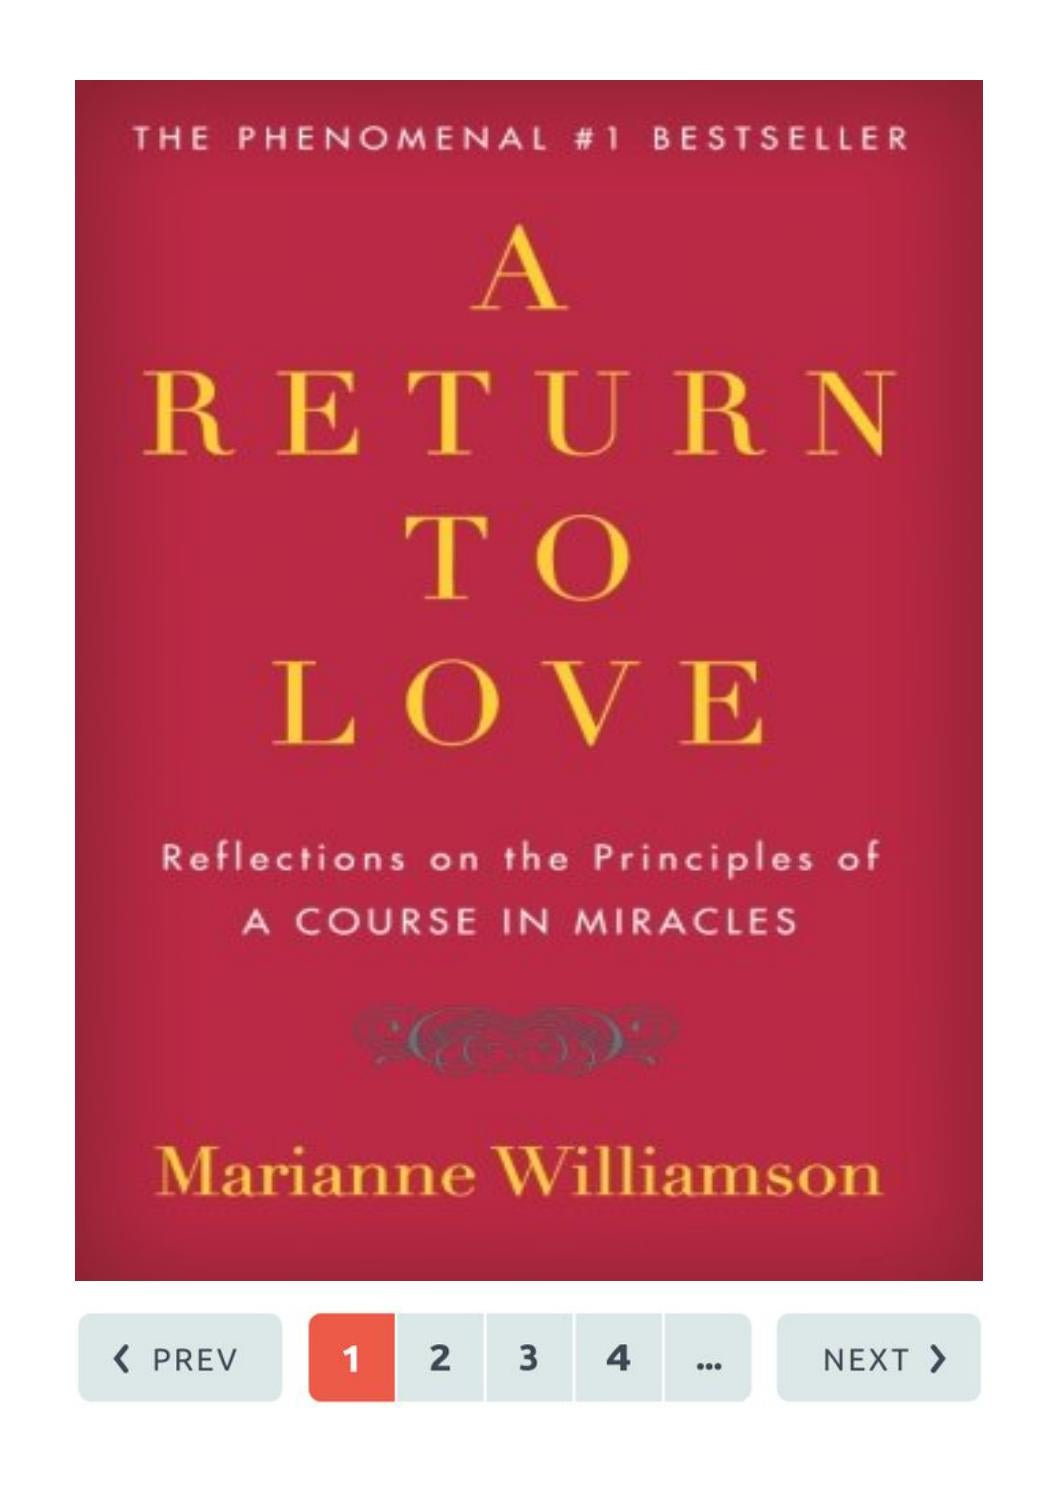 A Return To Love Marianne Williamson Reflections On The Principles Of A Course In Miracles By Patricia Berthelsen Issuu